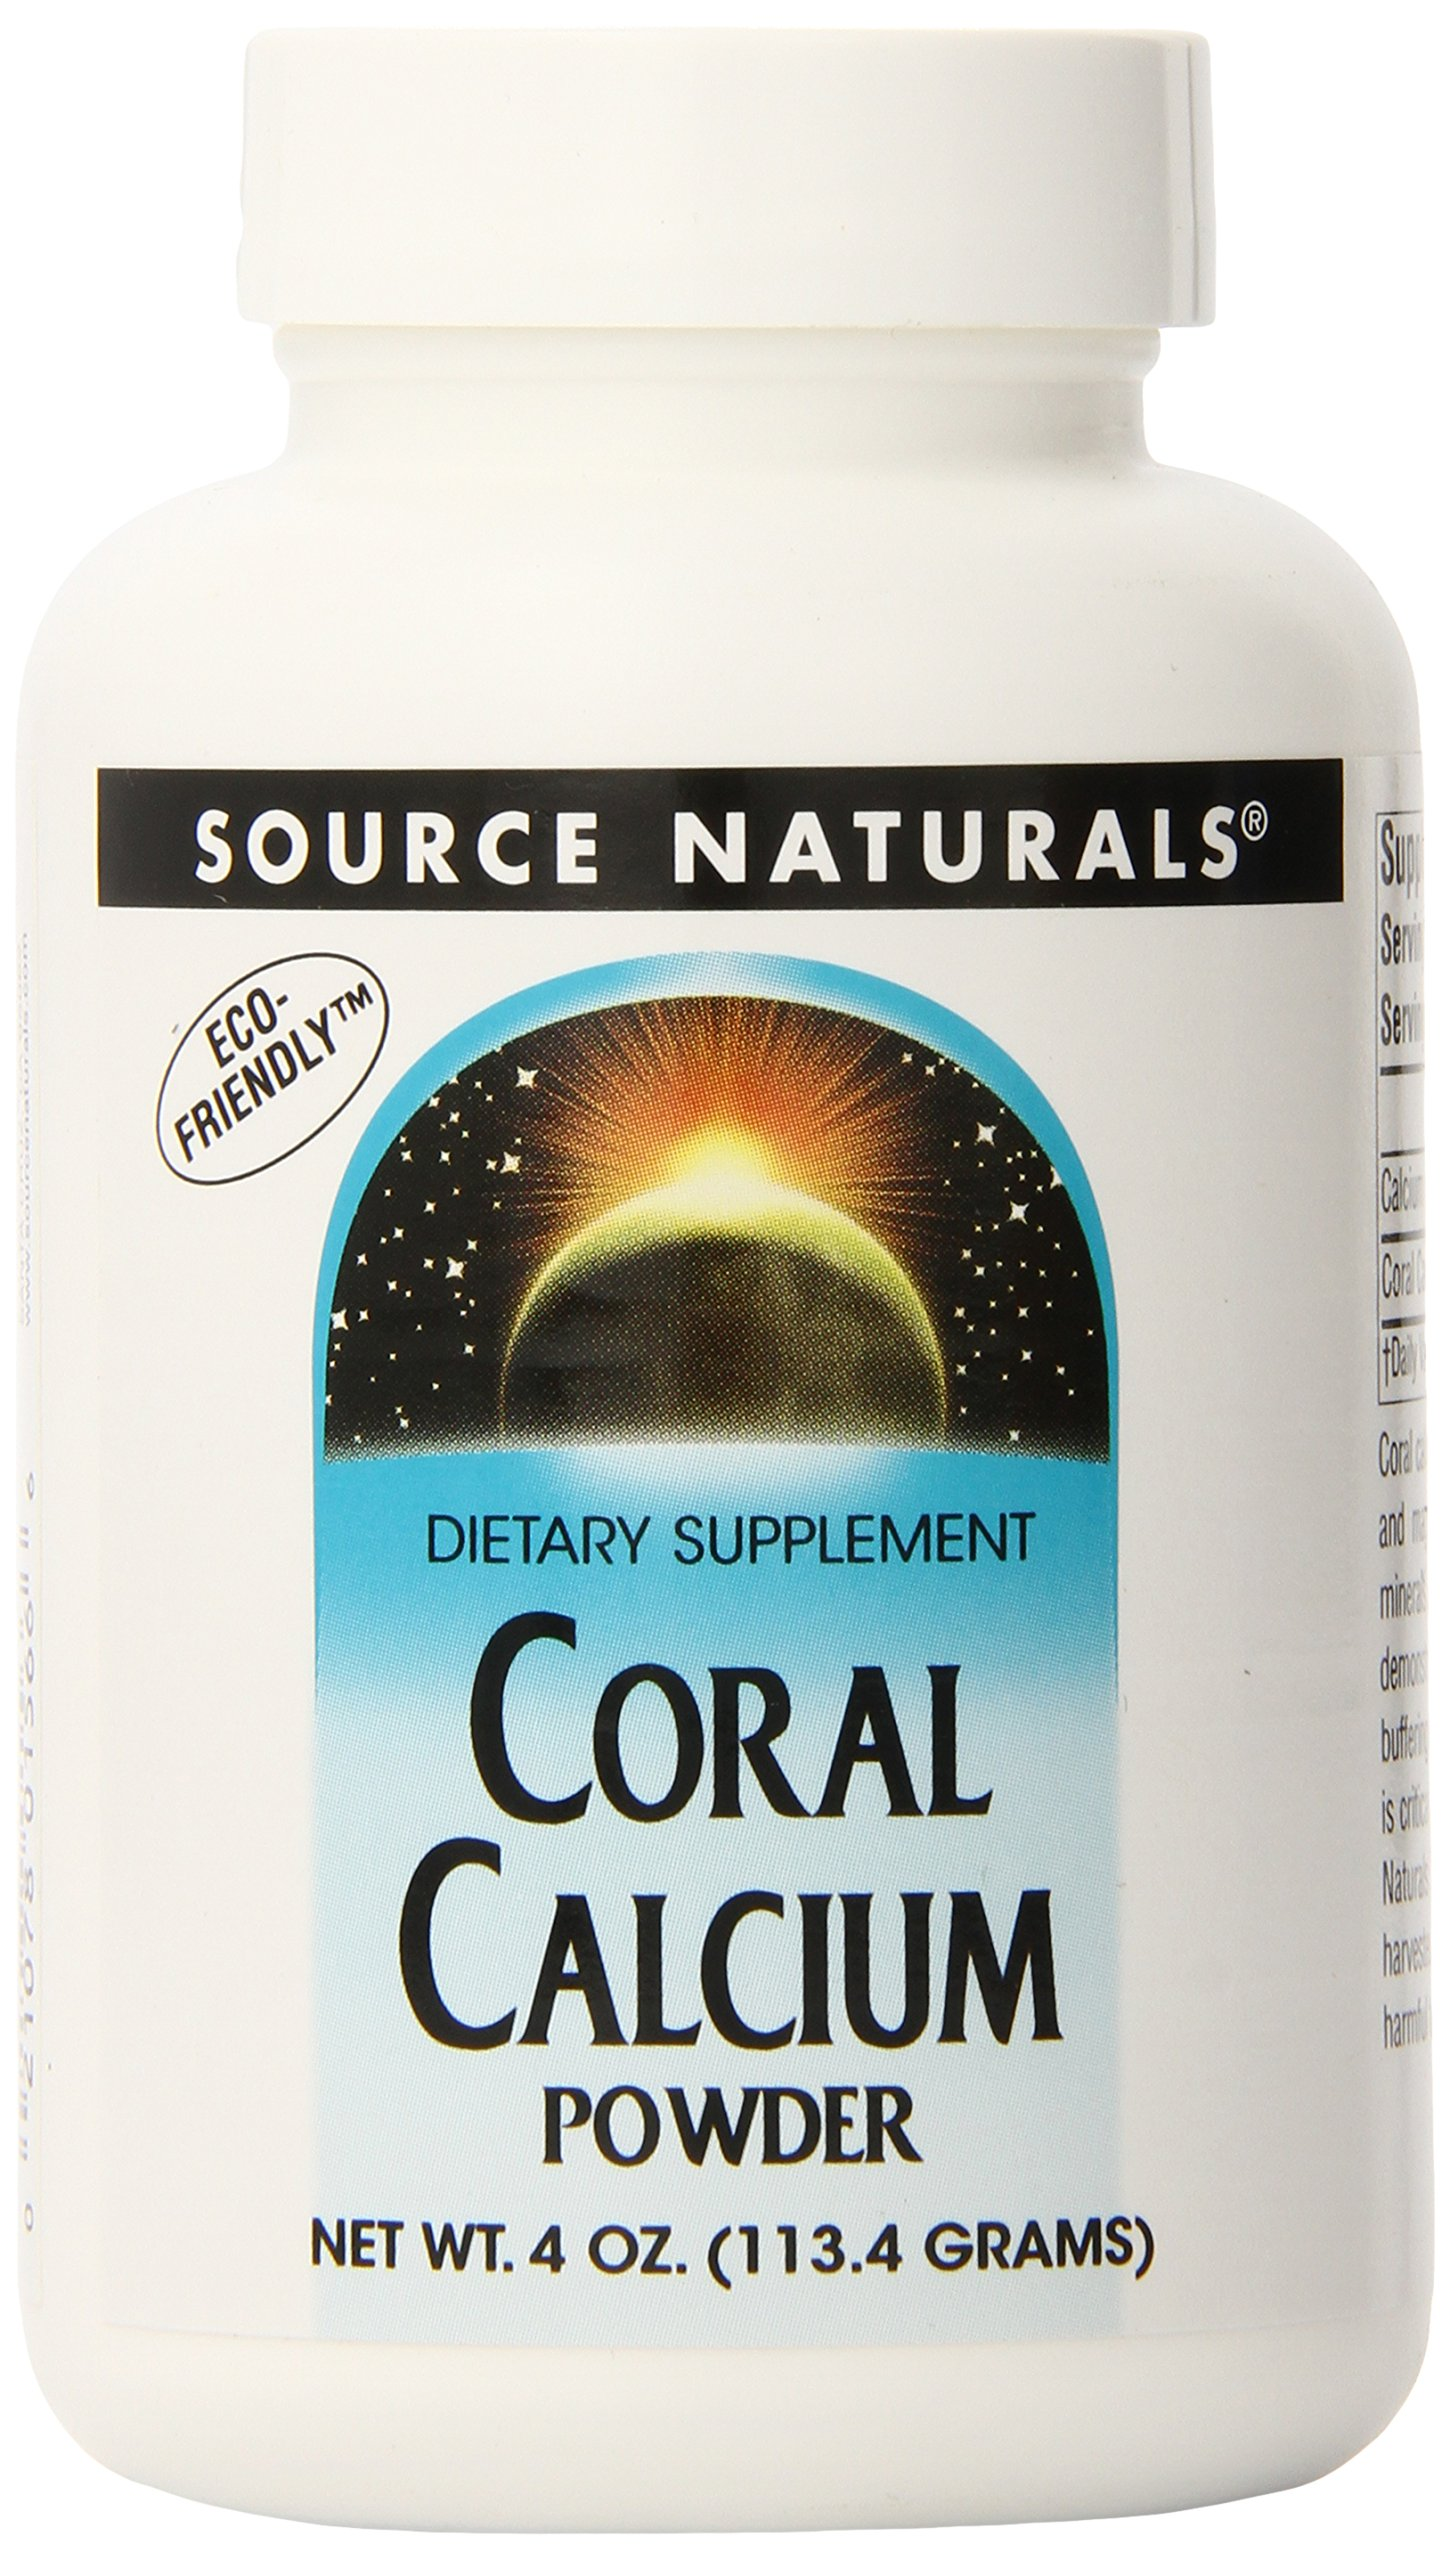 Source Naturals Coral Calcium Powder, 4 Ounce